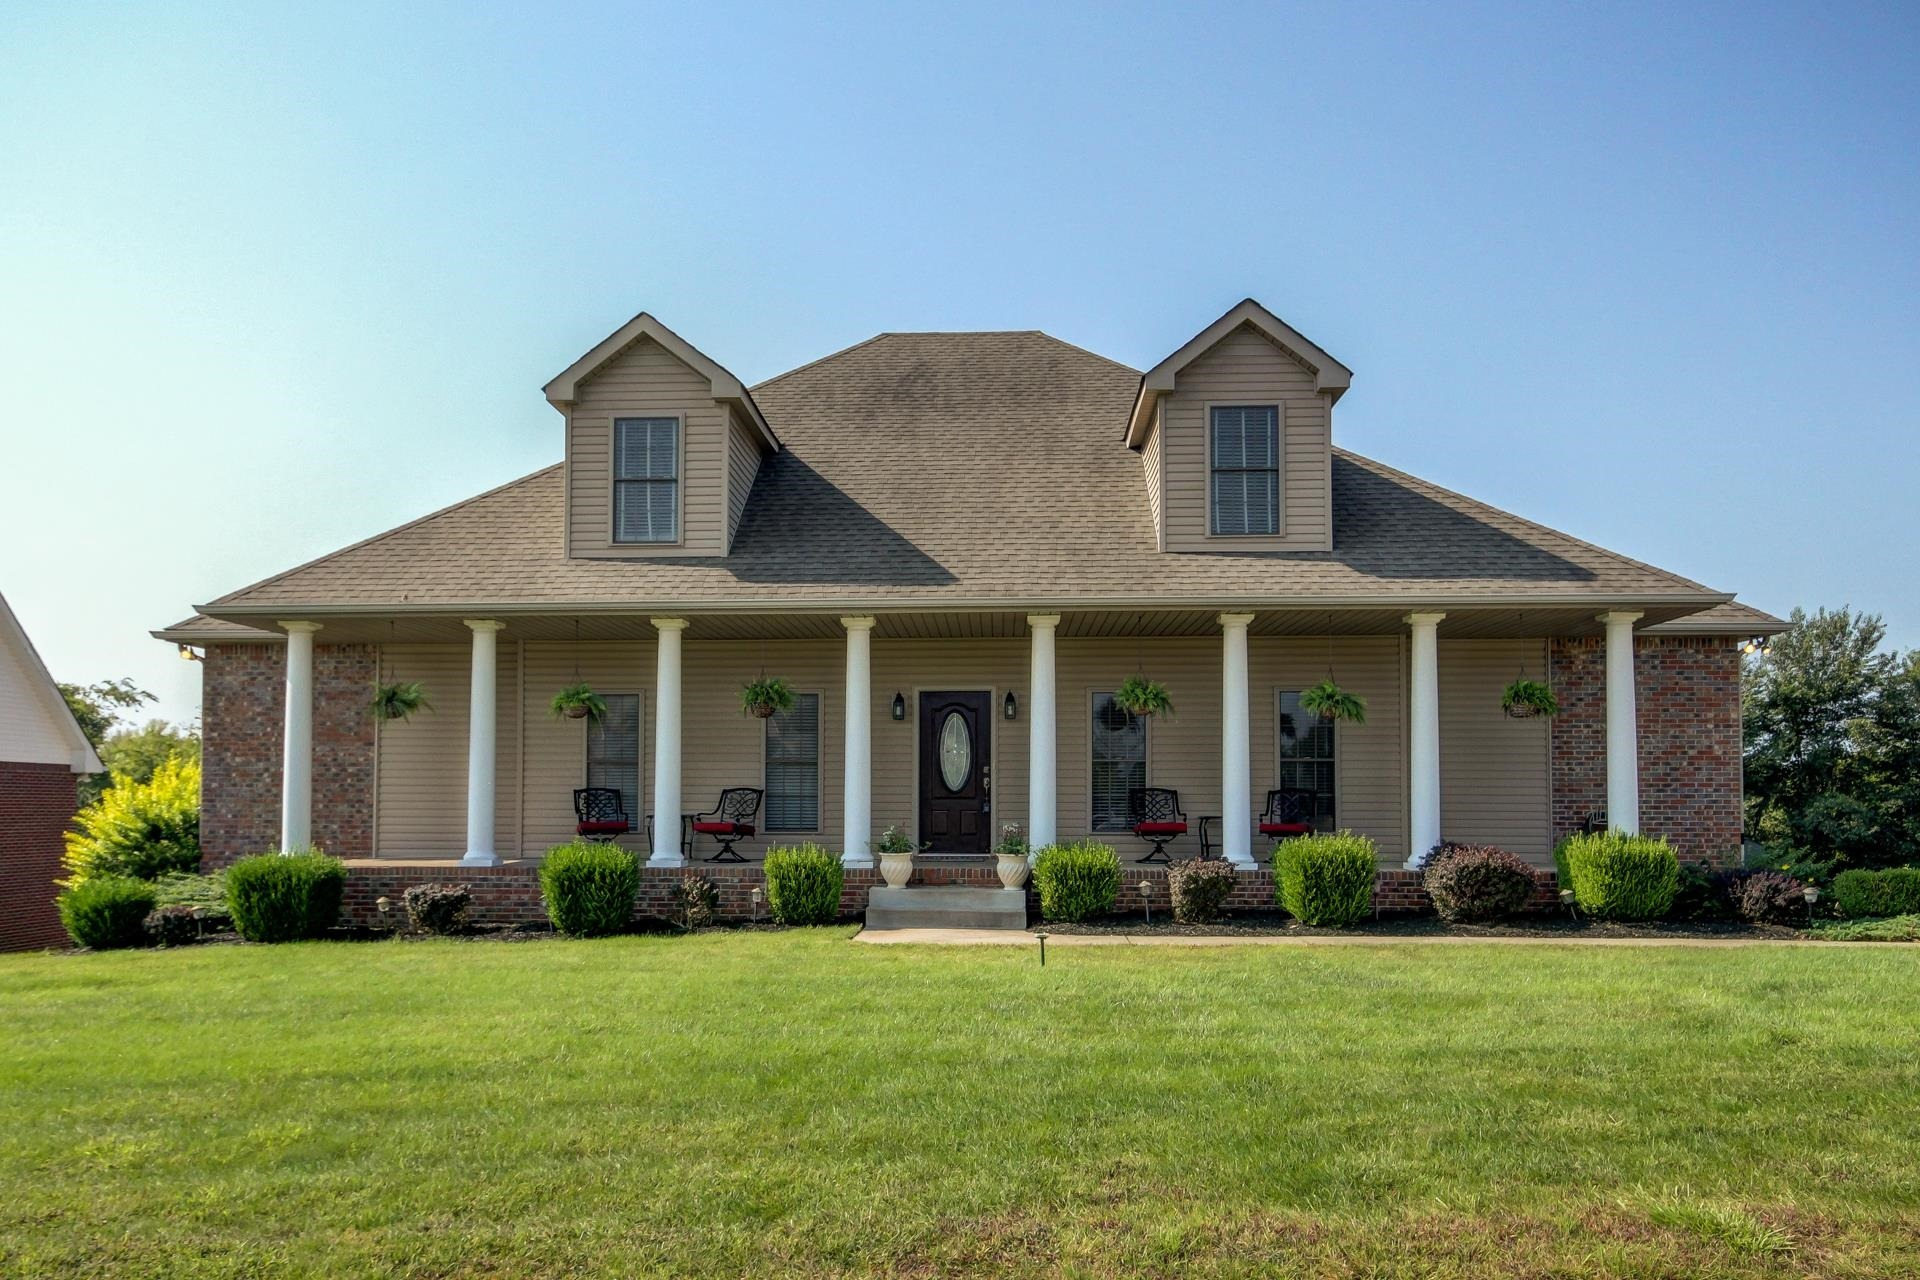 Homes for Sale in South Ridge Subdivision Clarksville TN